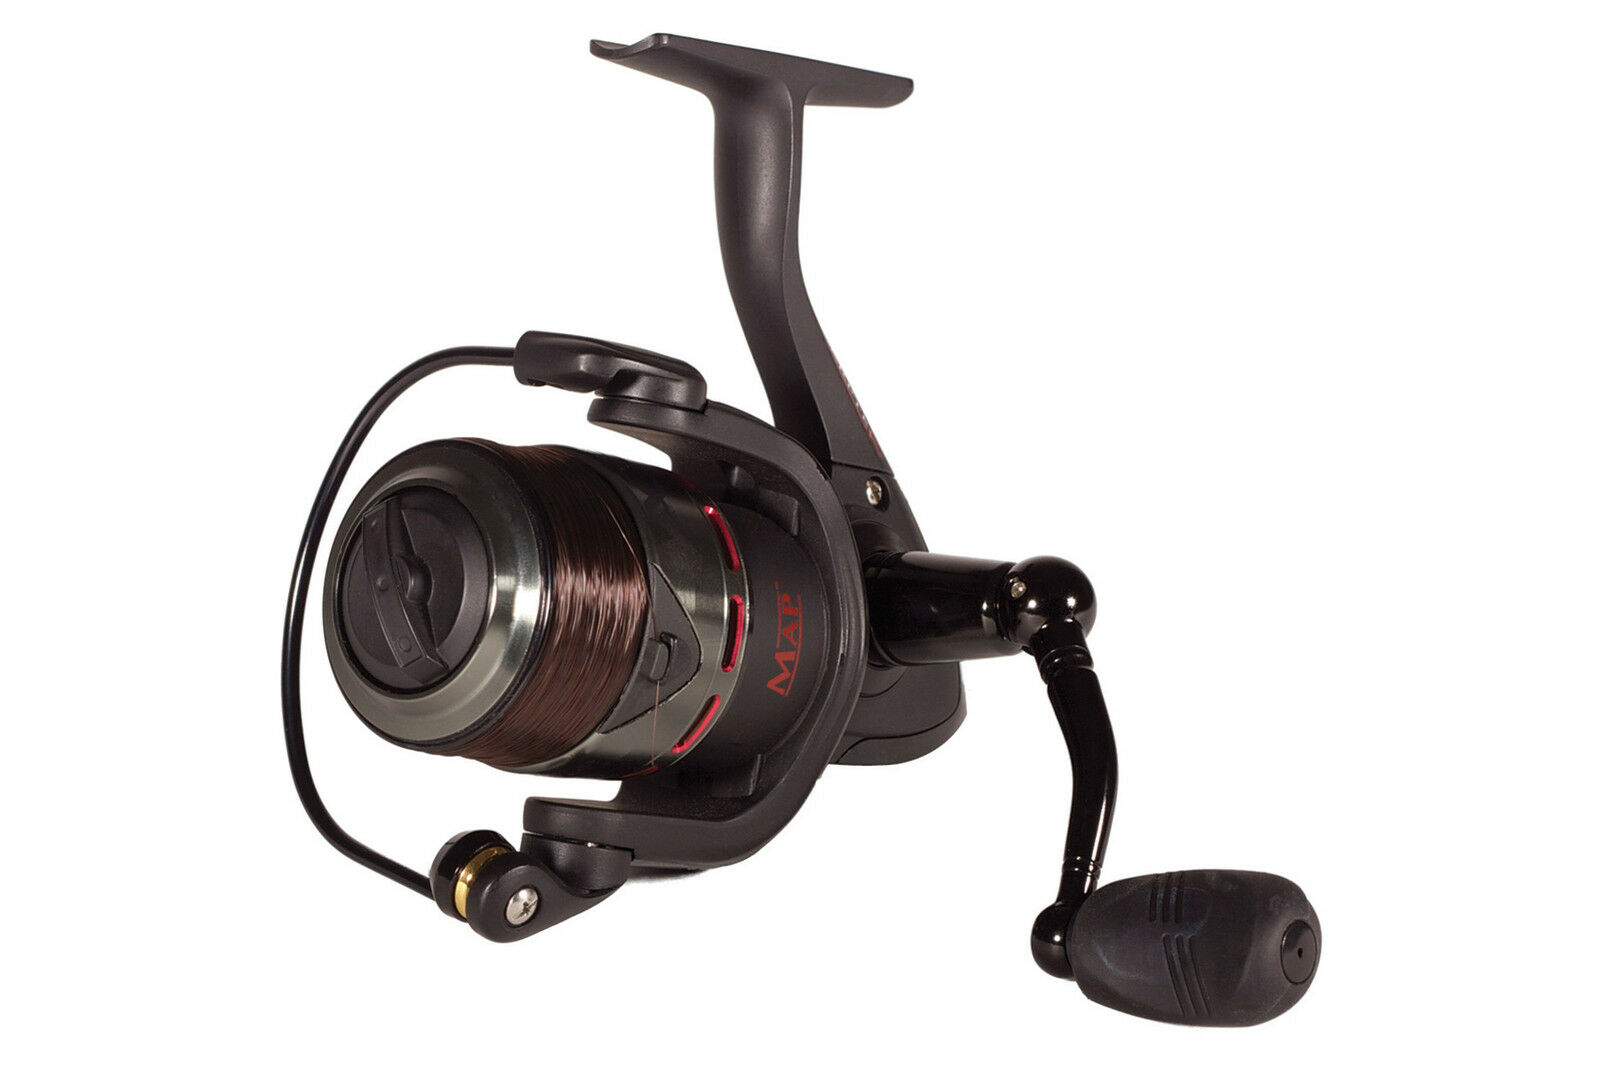 MAP FD Carptek ACS 3000 FD MAP Reel / Course Carp Fishing / C0907 / Leeda cee488